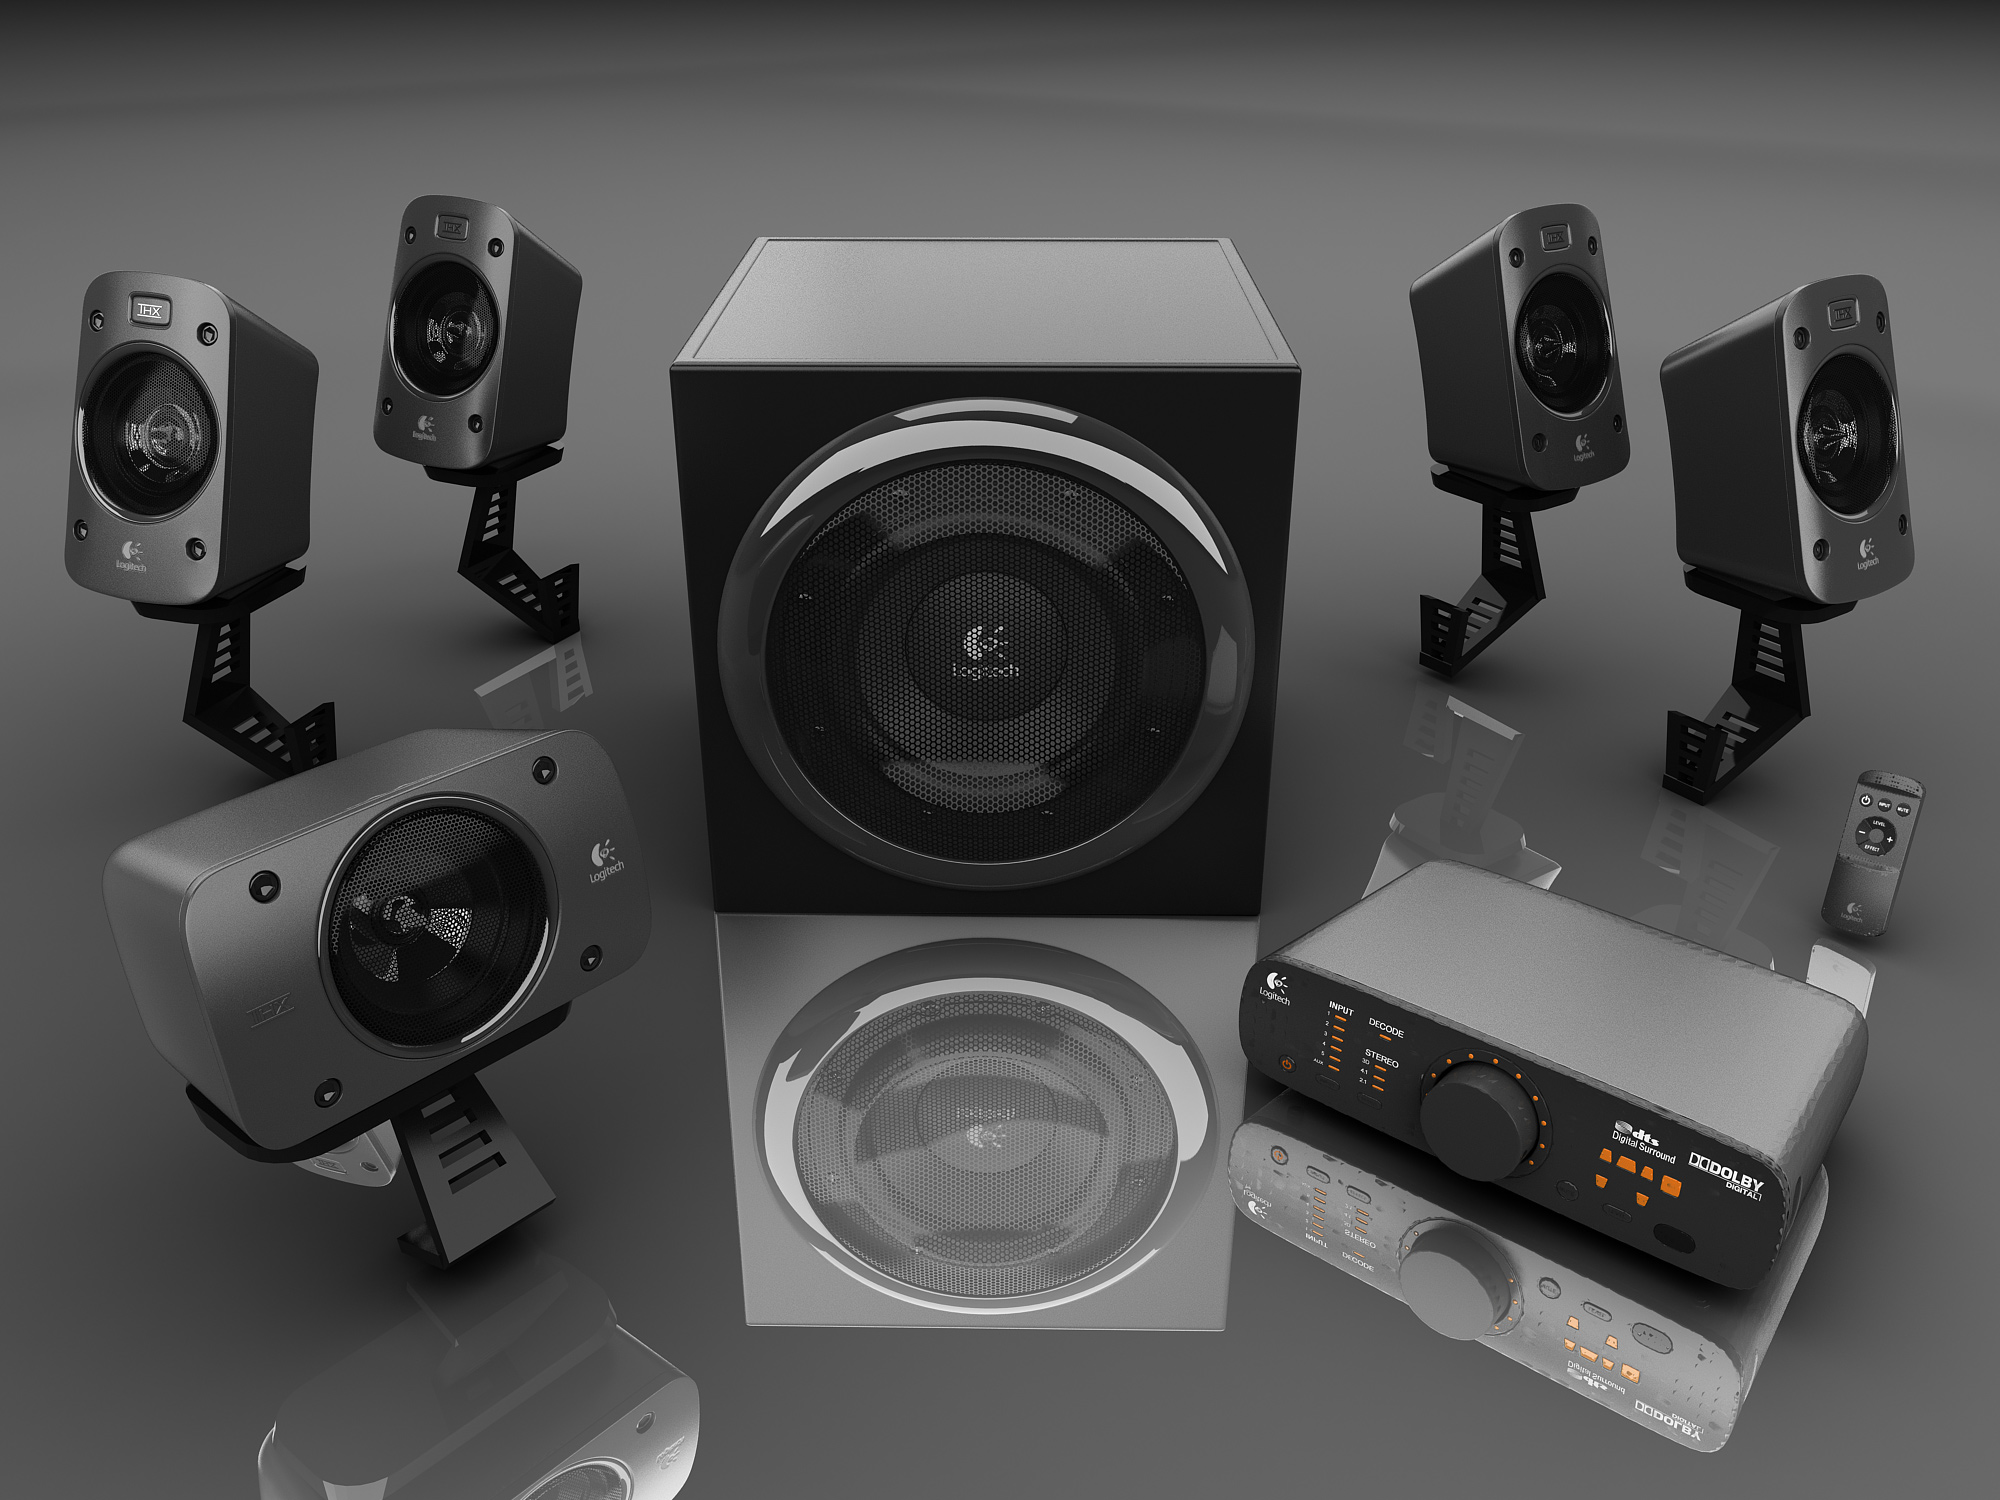 Audio System 5 1 Thx Surround Sound Logitech Z906